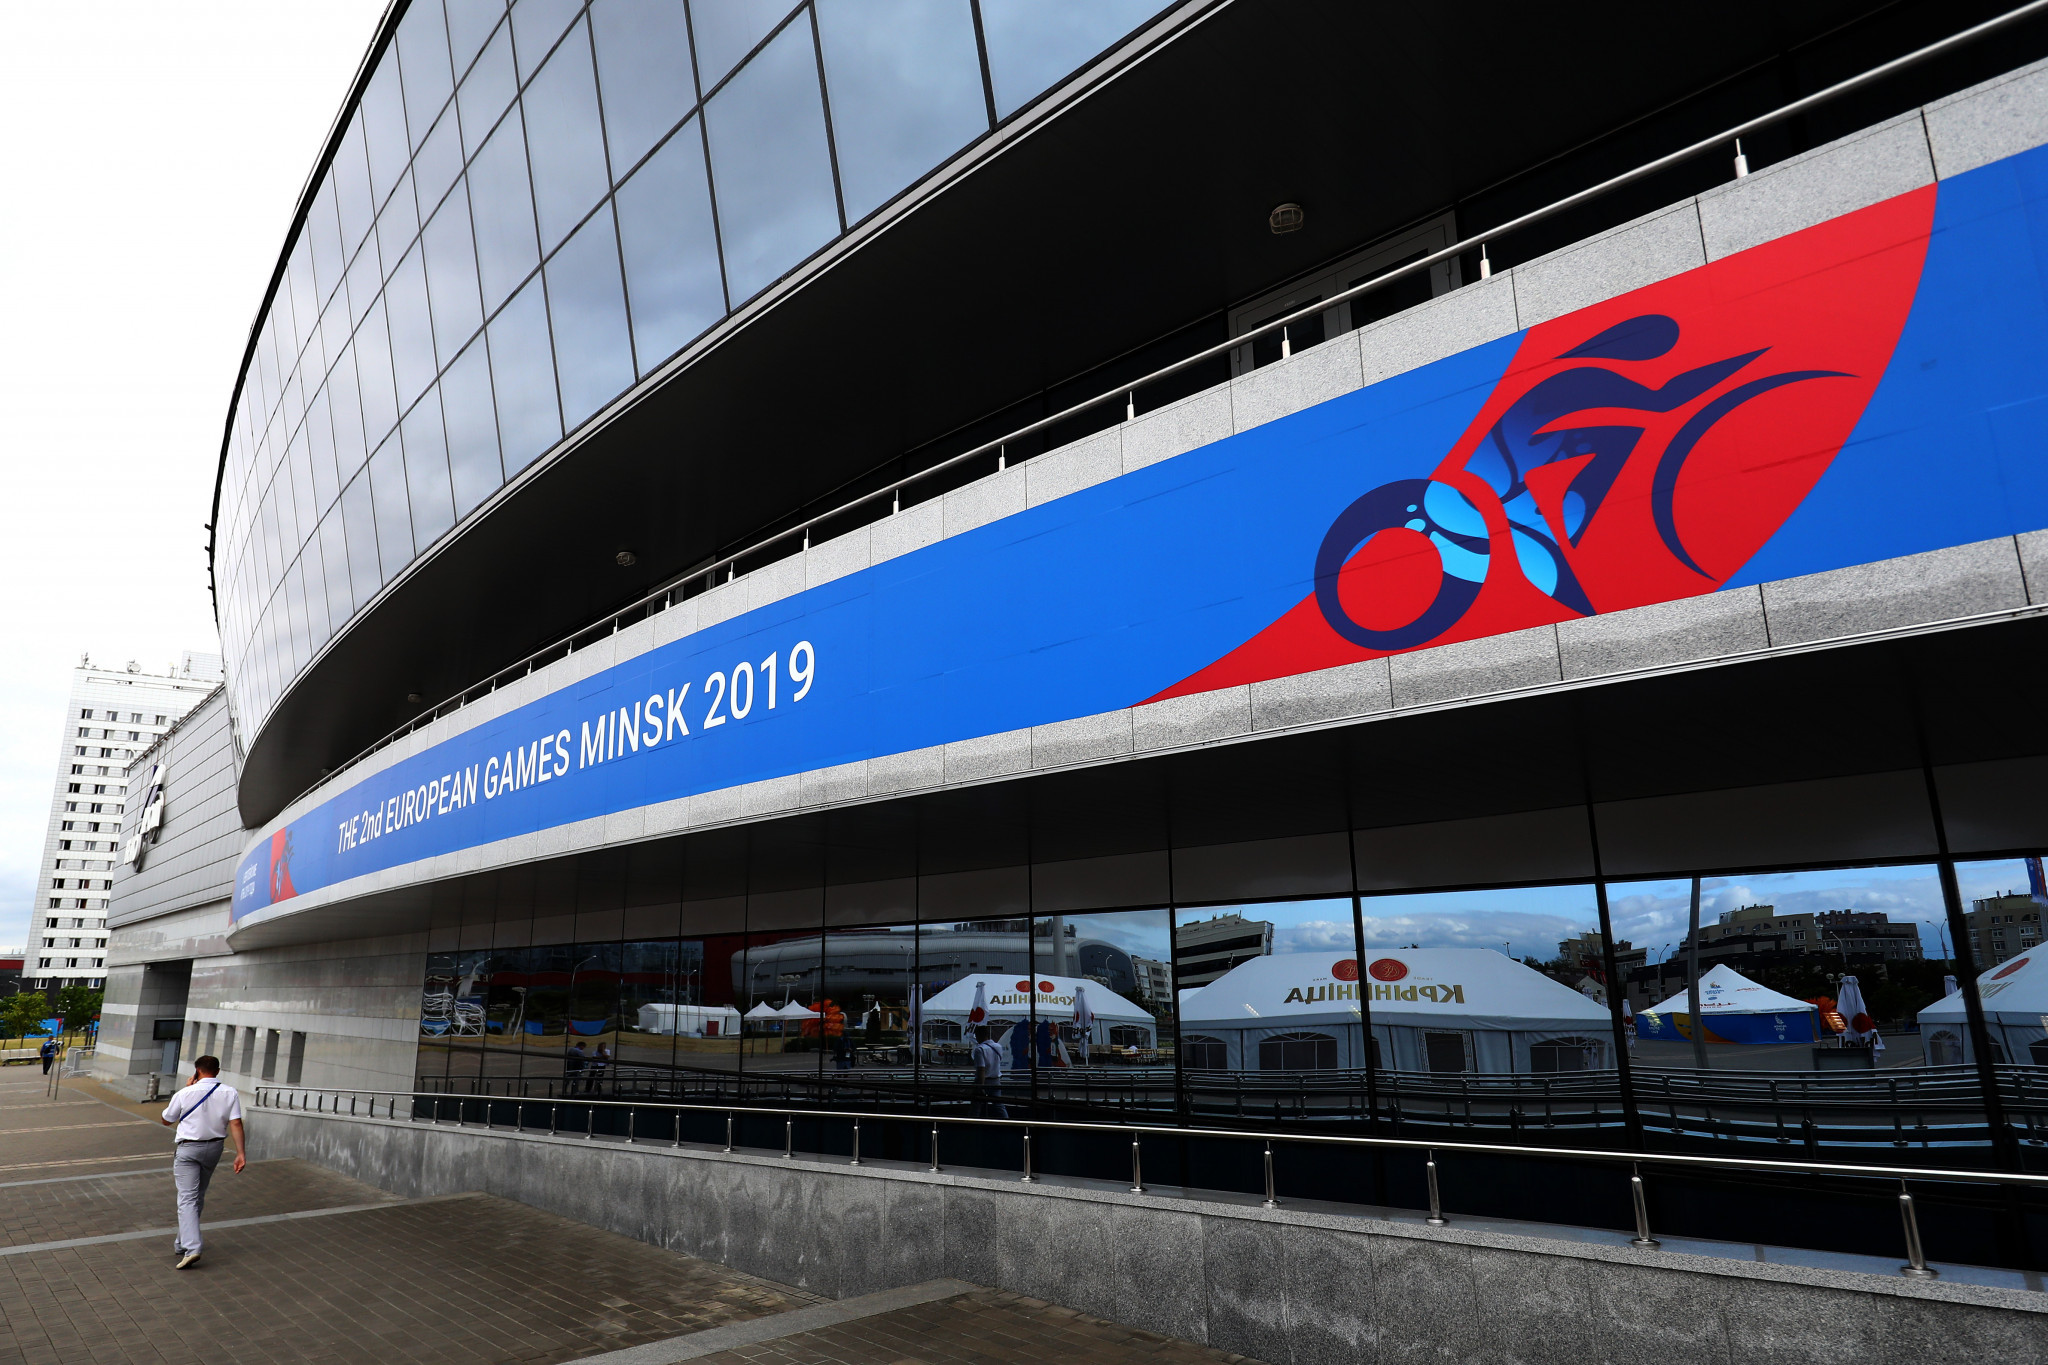 The Minsk Arena hosted track cycling competition at the European Games in 2019 ©Getty Images